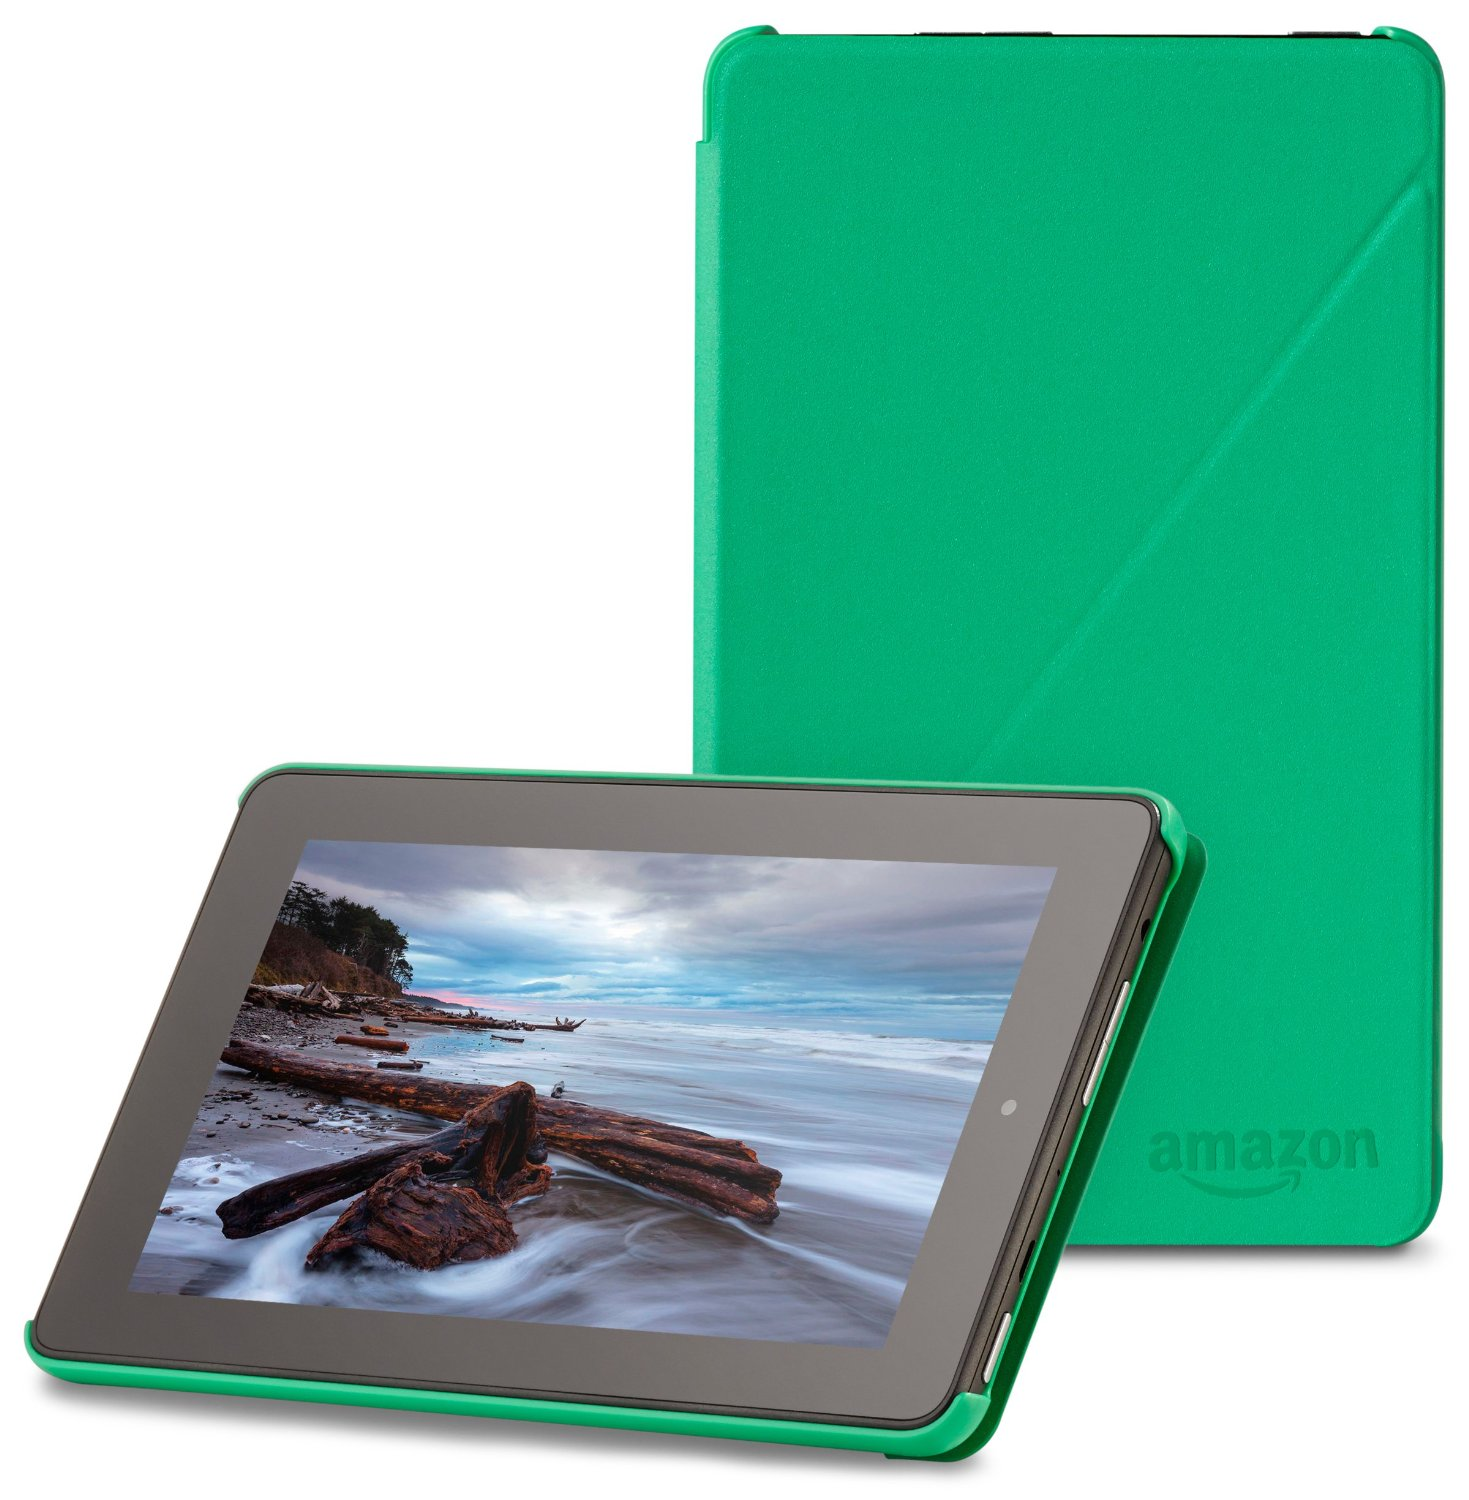 buy online 9a8a0 0108e Top 10 Best Amazon Fire Tablet (2015) Cases And Covers